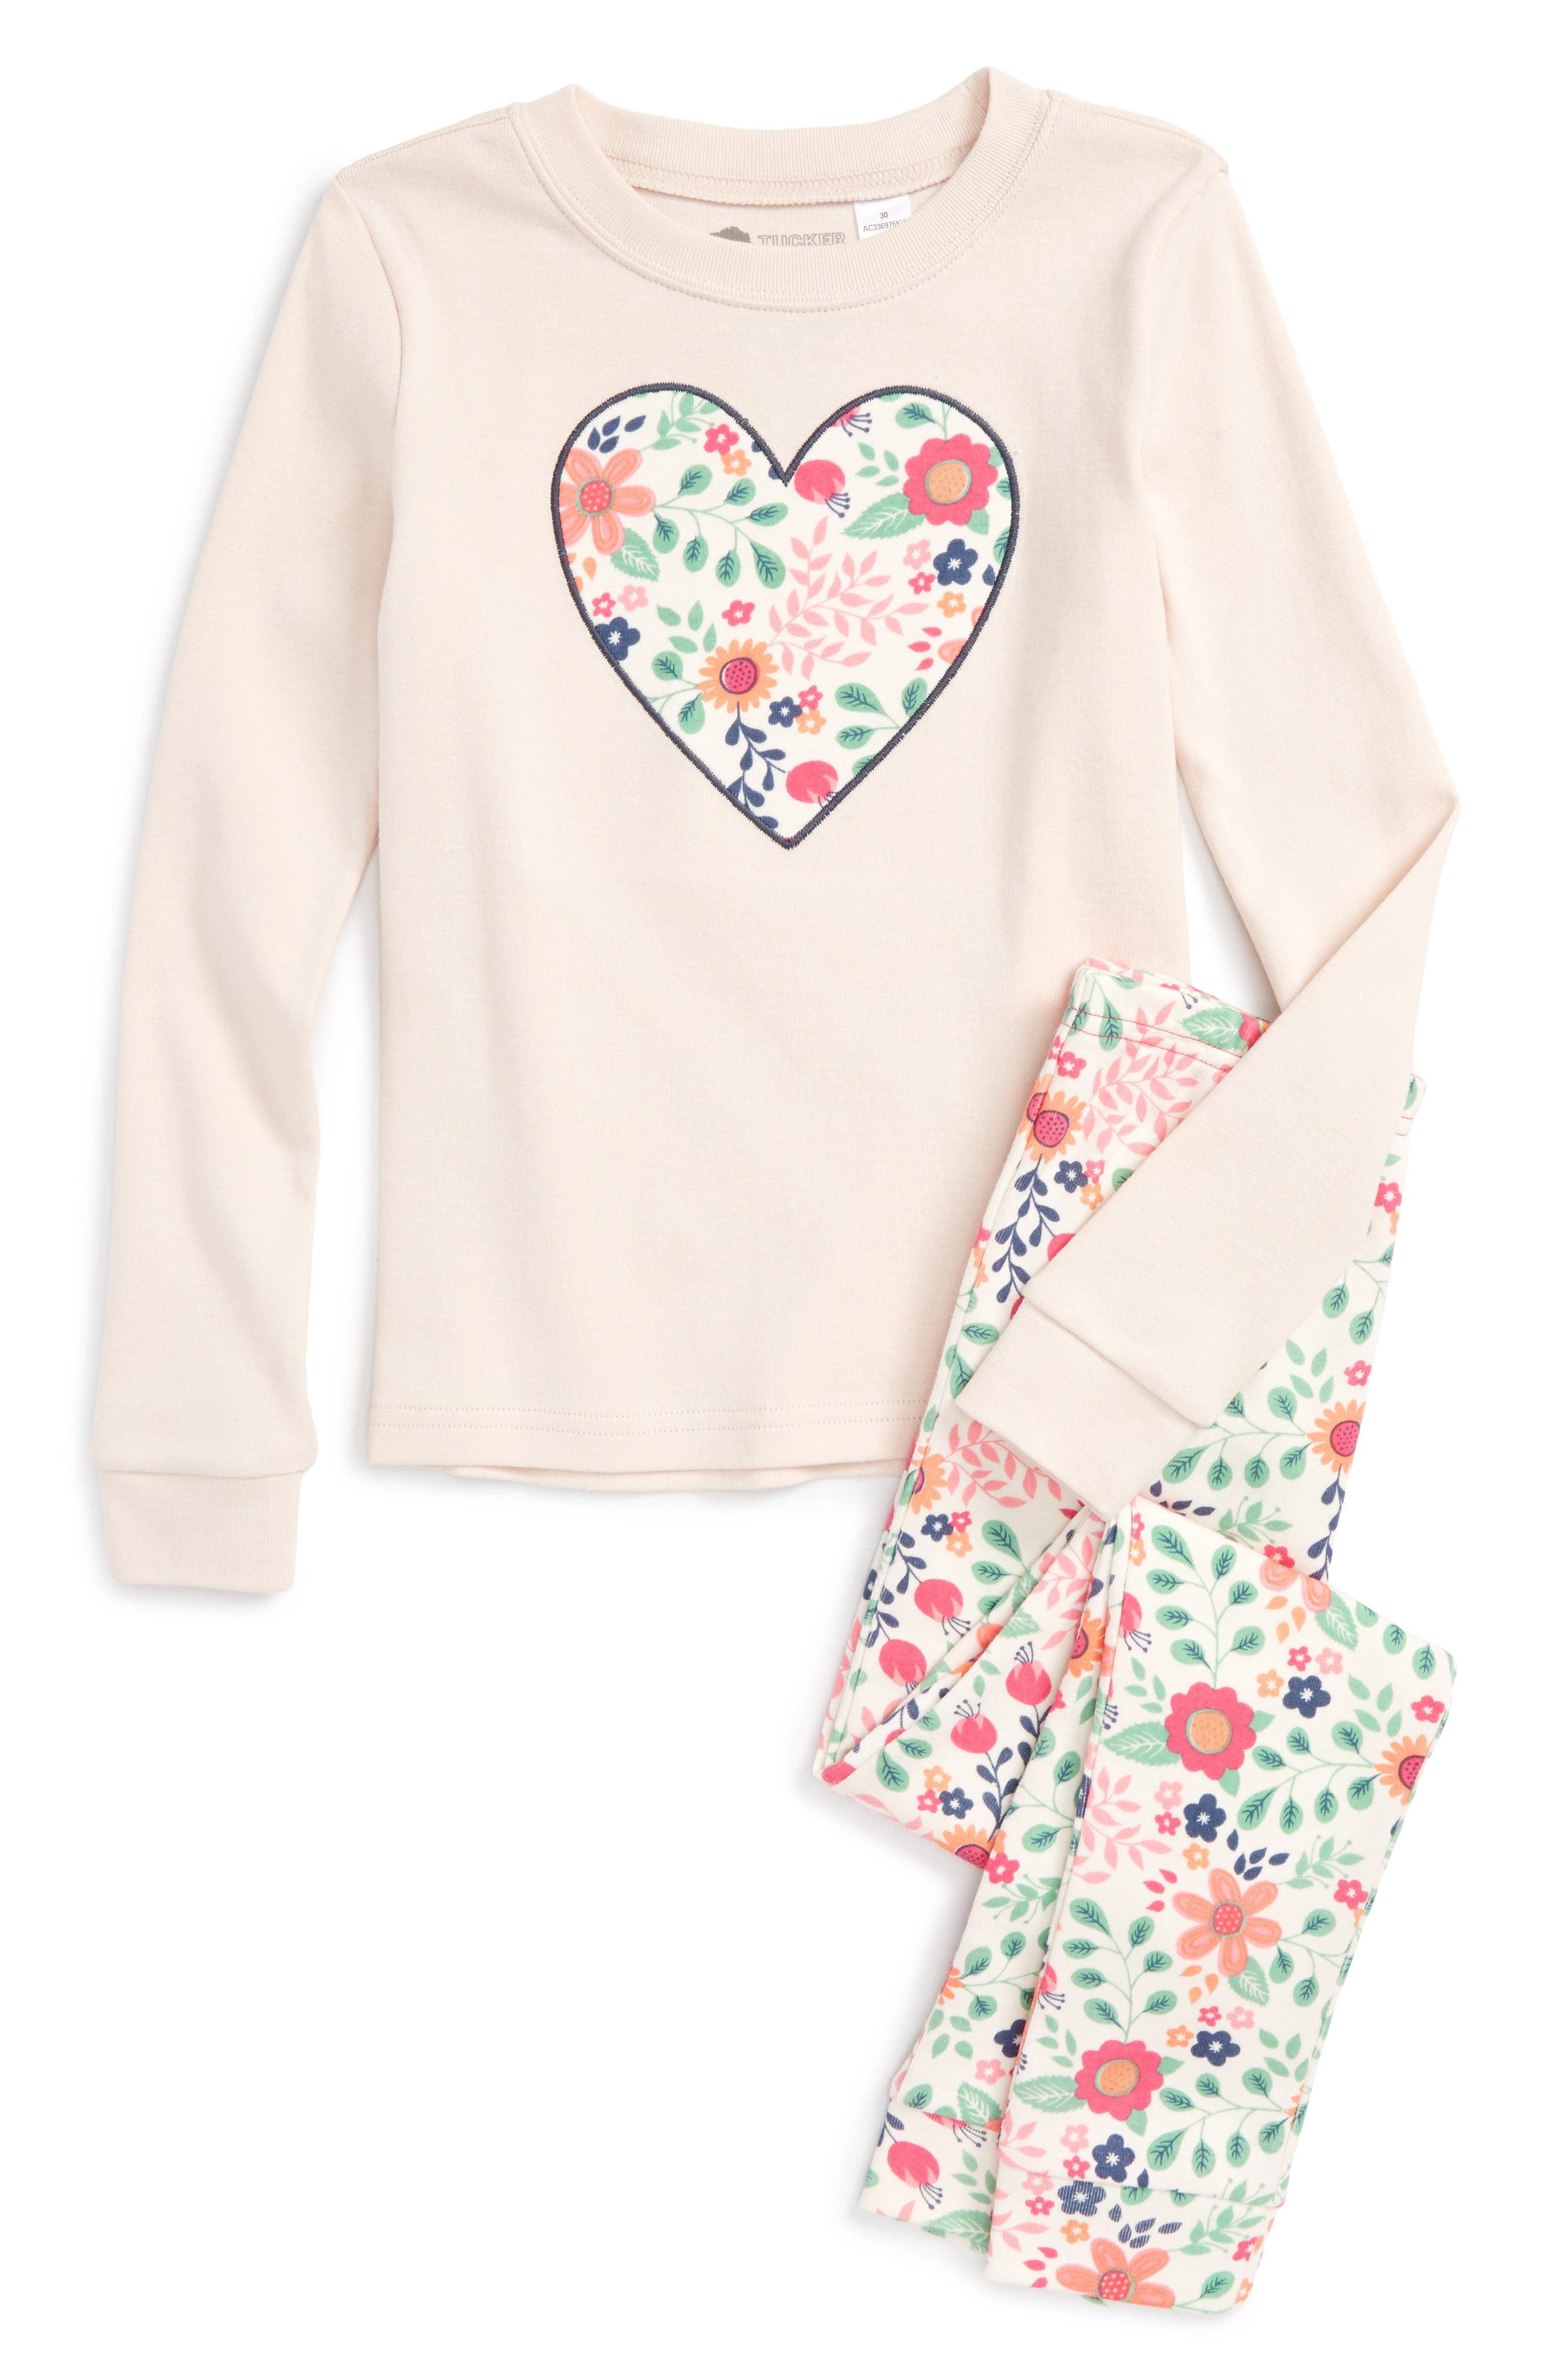 Fitted Two-Piece Pajamas,                         Main,                         color, Pink Peony Bud Floral Heart